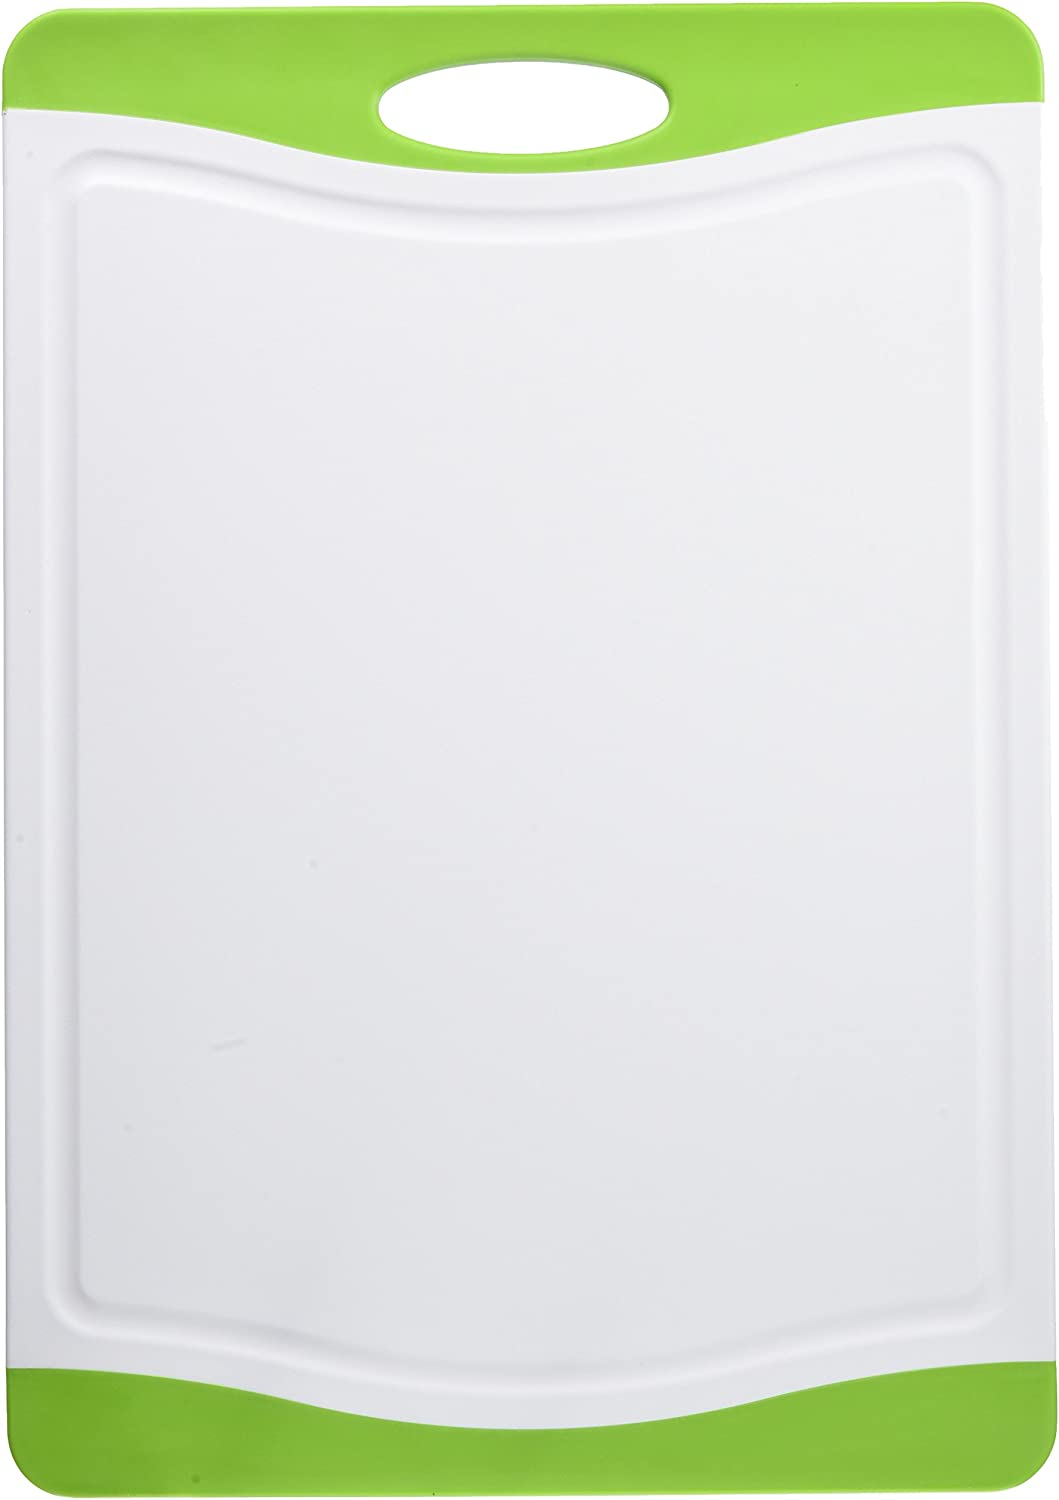 """Neoflam 17"""" Plastic Cutting Board in White and Green - BPA Free, Non Slip, Dishwasher Safe, Microban Antimicrobial Protection"""